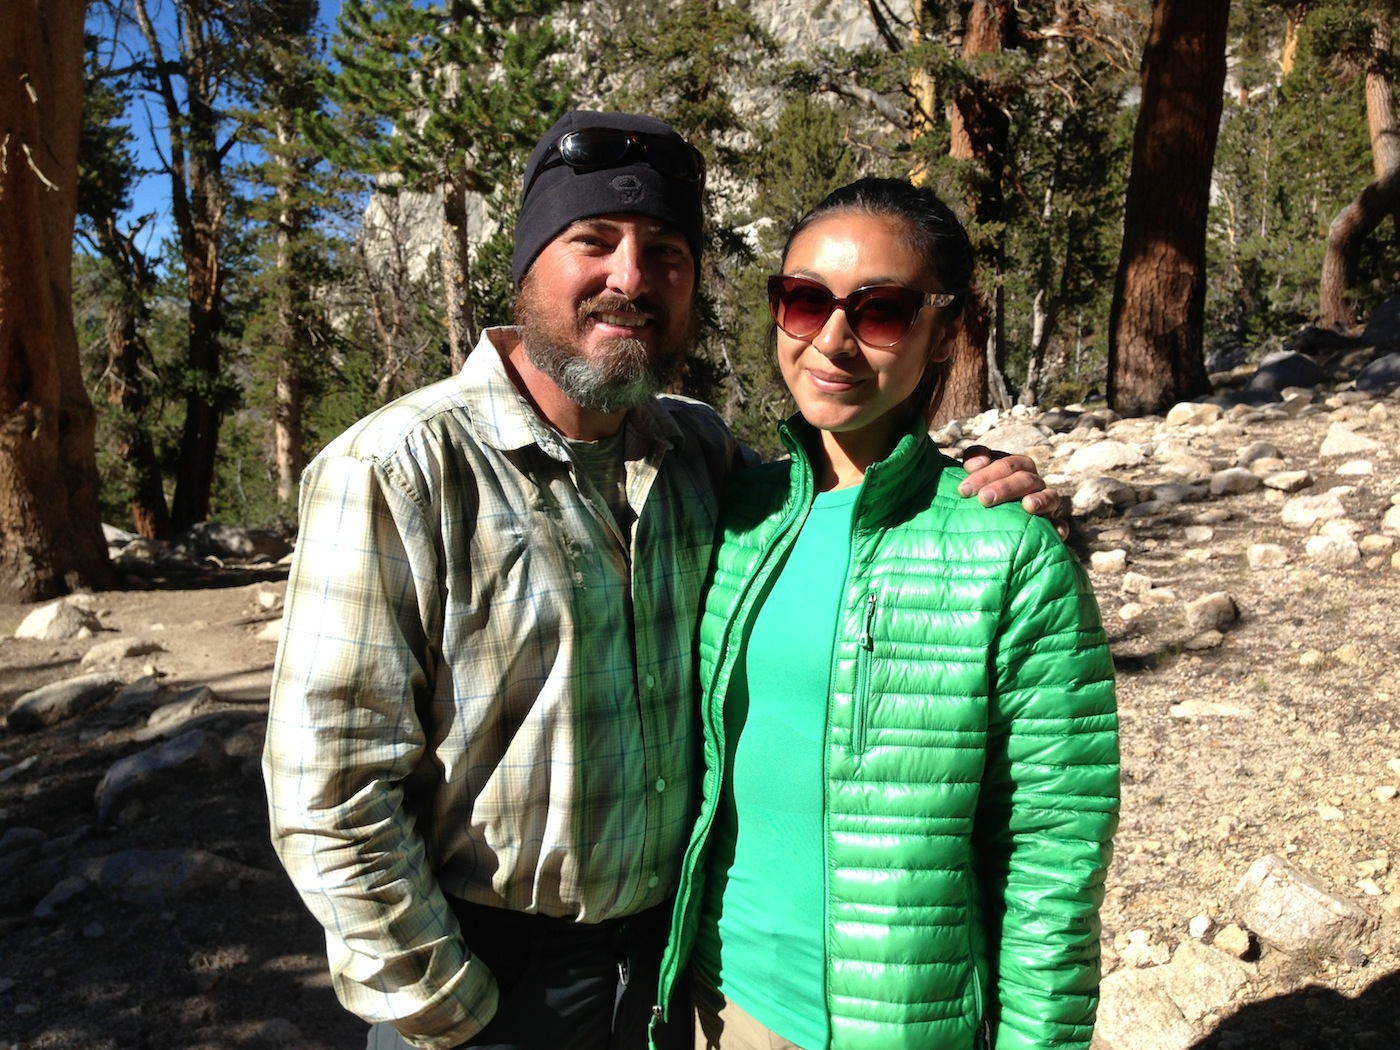 JMT hikers Kent and Priscilla on the trail near Bullfrog Lake on Aug. 29